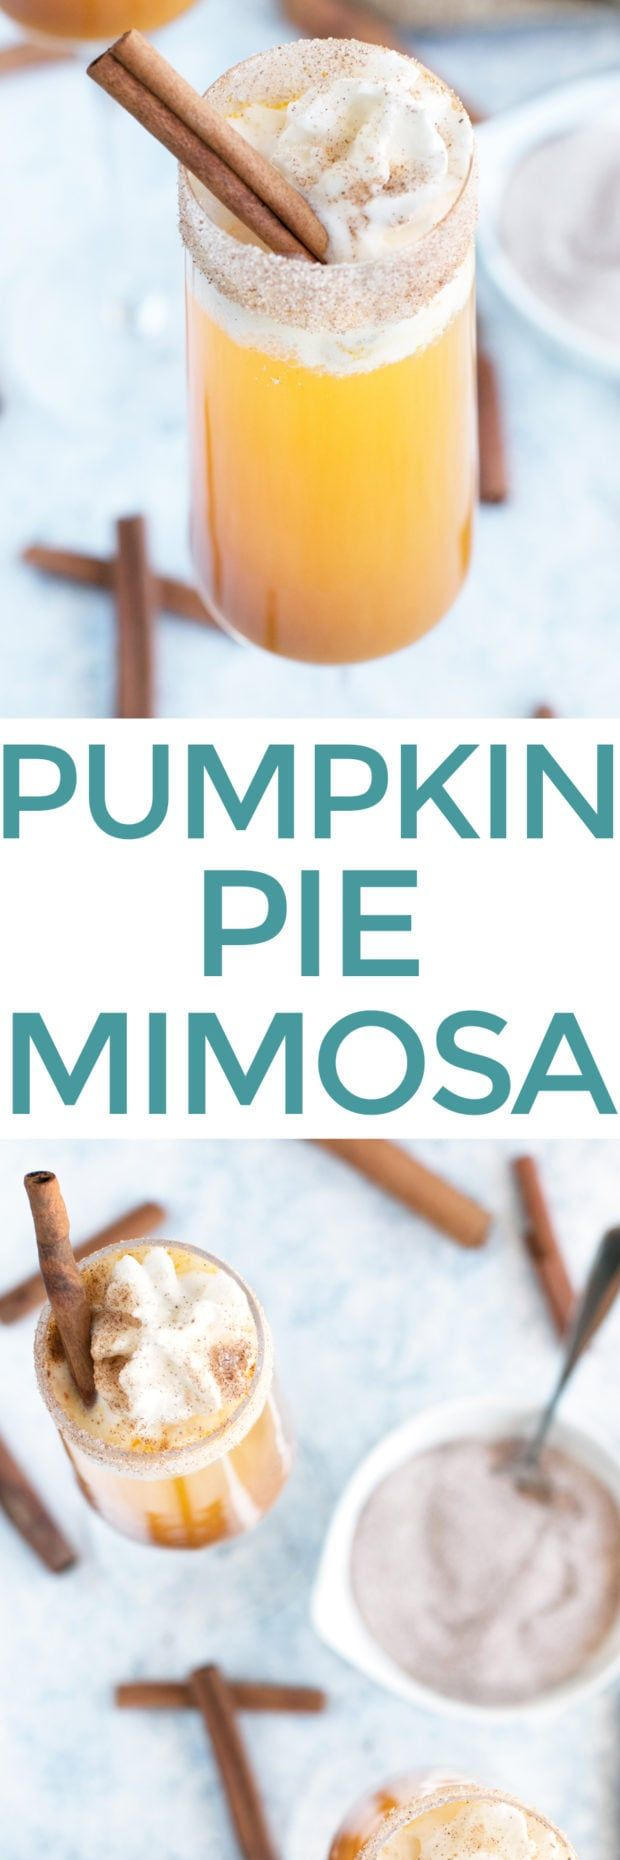 Pumpkin Pie Mimosa - Cake 'n Knife #simplecocktail